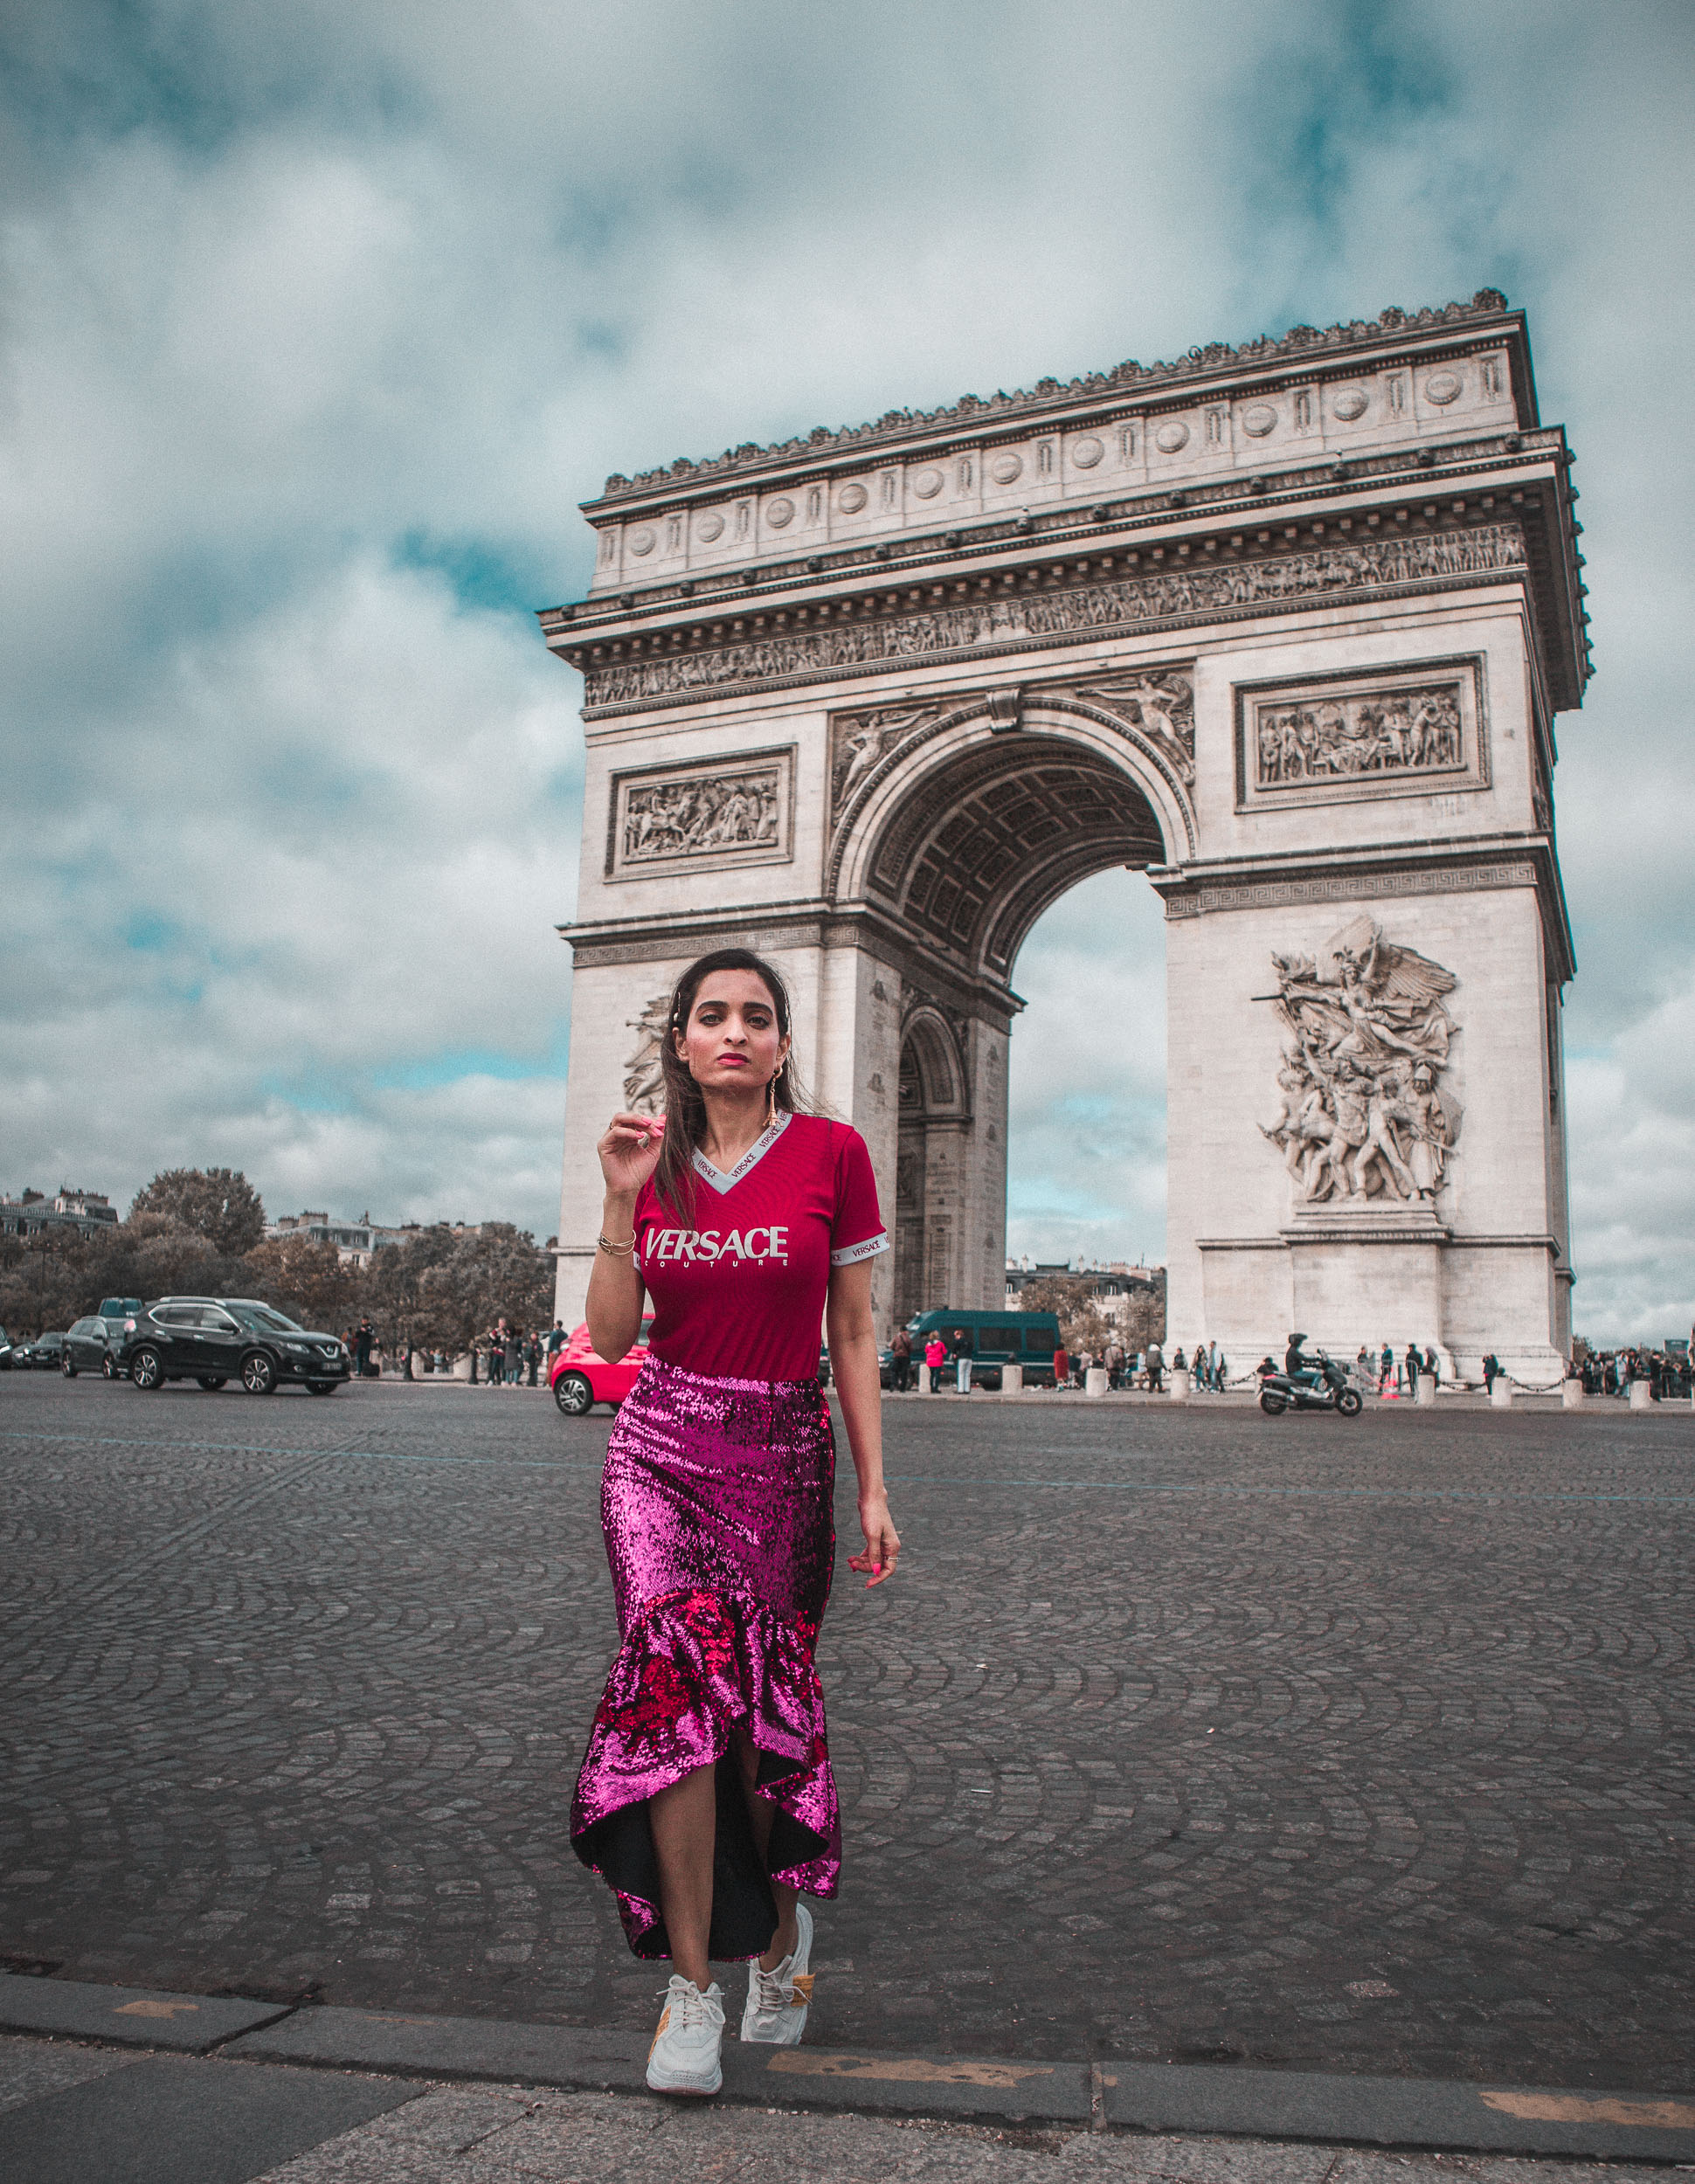 Girl travel blogger and fashion blogger wearing pink sequin Rachel Gilbert skirt with red versace tee shirt standing in front of the Arc de Triomphe in Paris for Paris travel guide